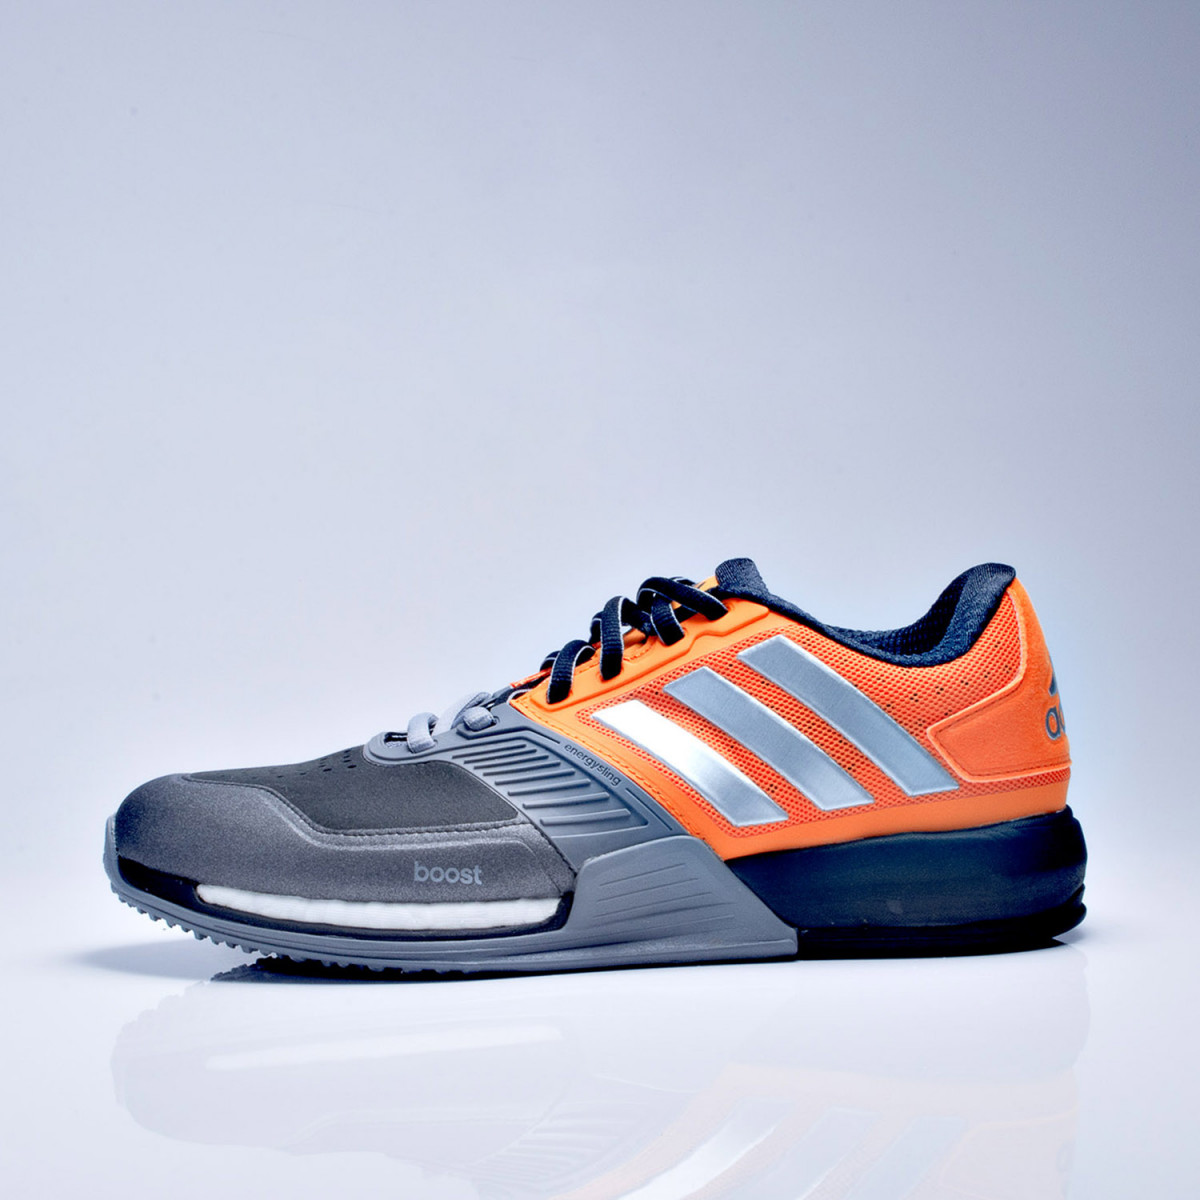 zapatillas adidas crazy train boost